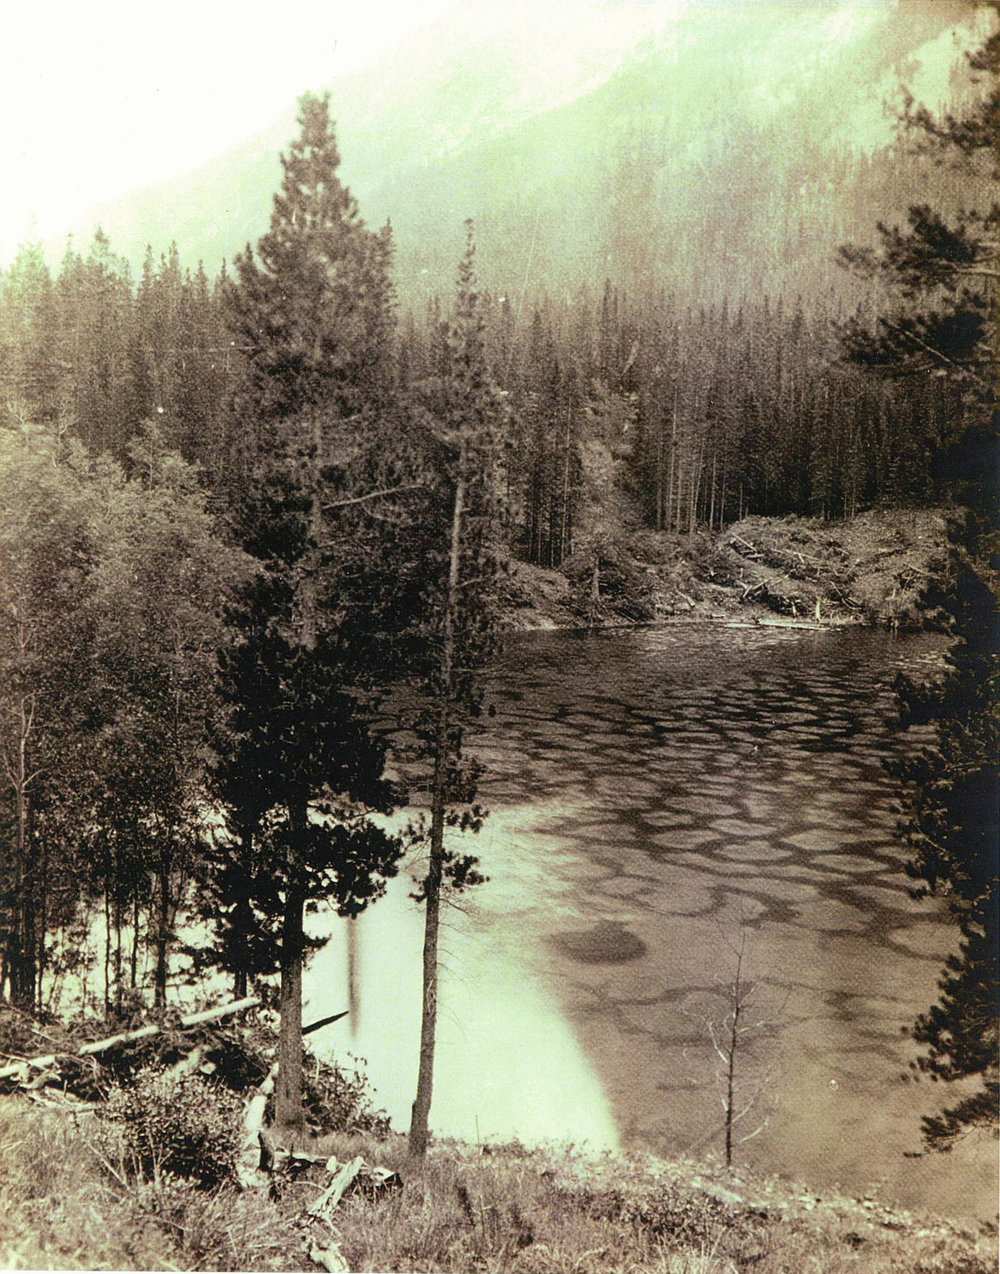 A rare photo from 1927 showing the Devil's Cauldron being cleared of trees and prepped for construction.  No evidence of a rockslide can be seen refuting such tales.